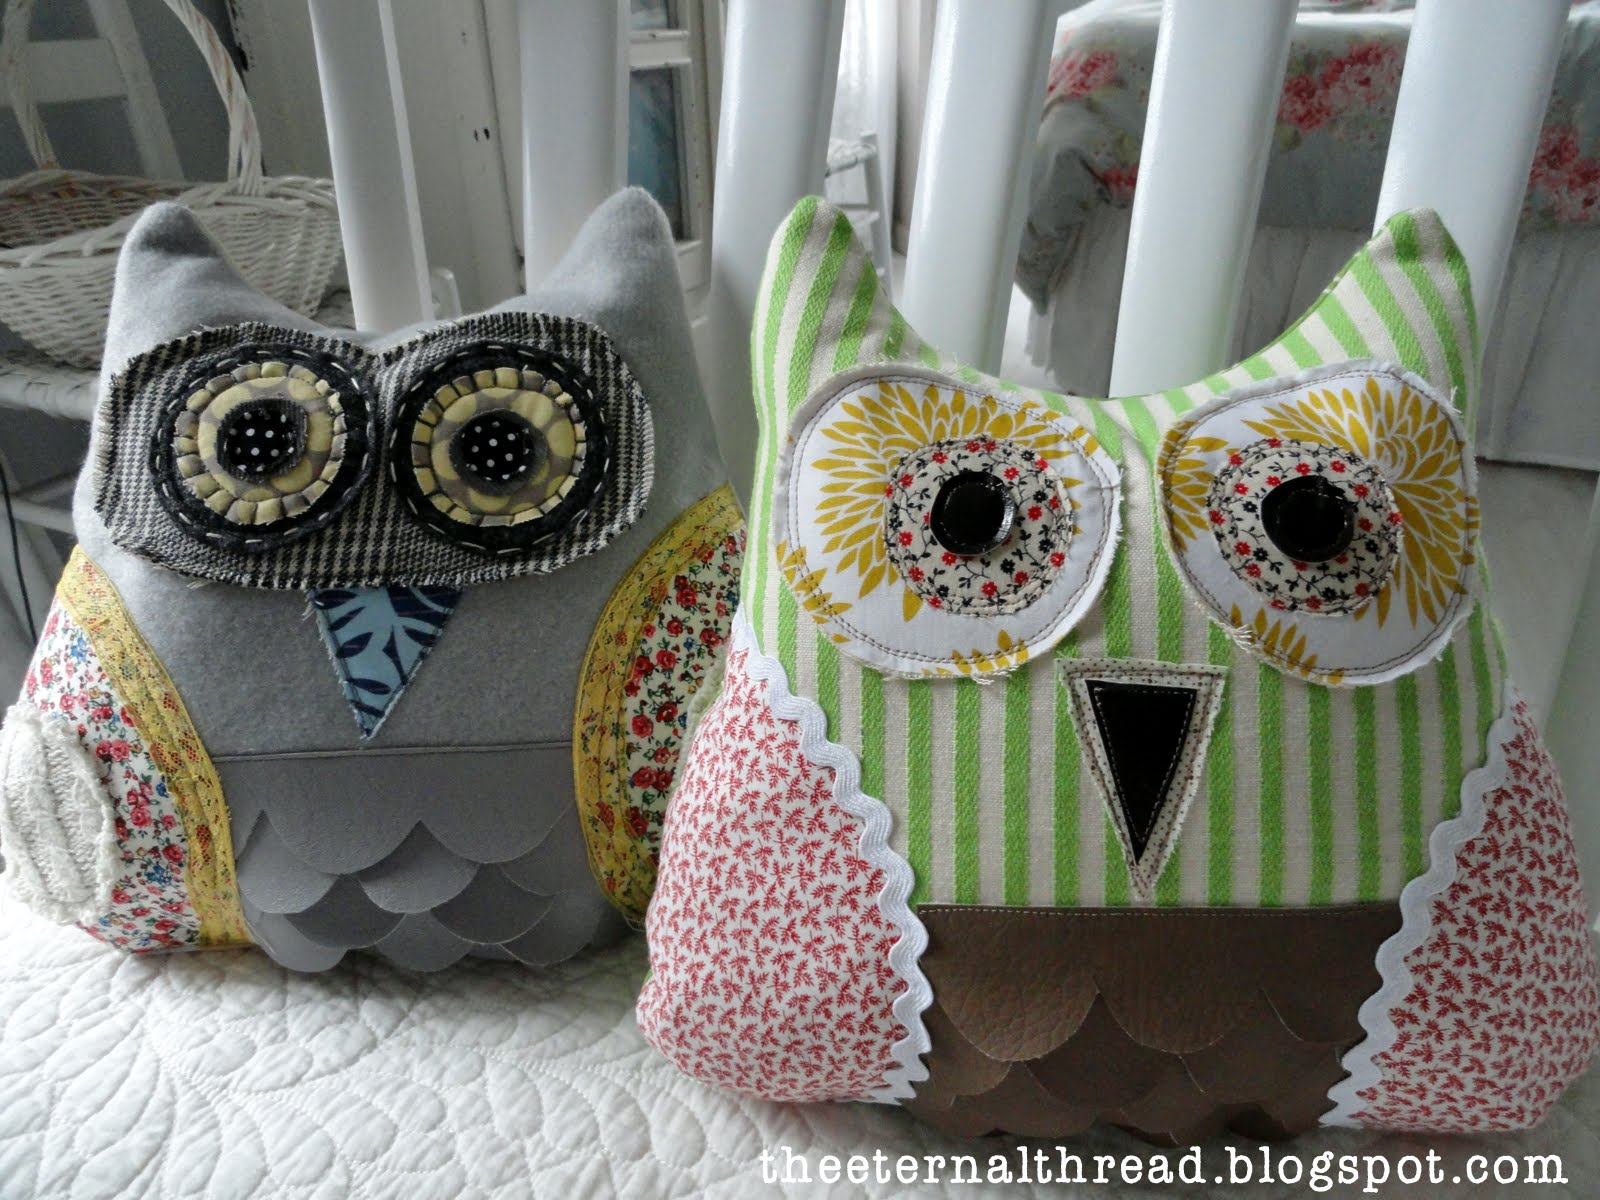 Fabulous fabric owl pillow free template and guide.